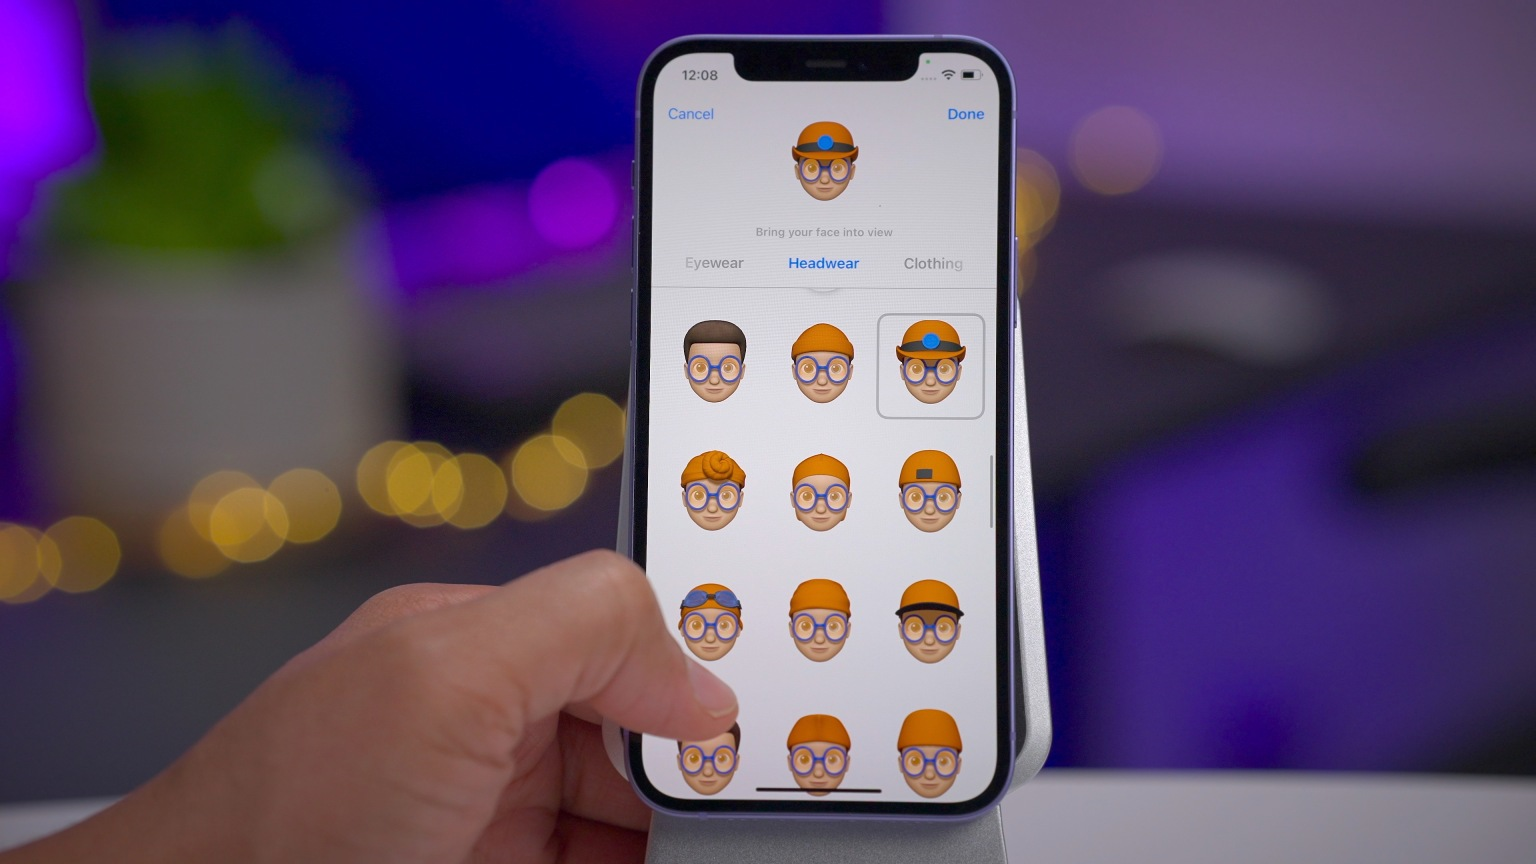 The picture shows how a user can upgrade their Emoji using various options available in the new iOS 15 update